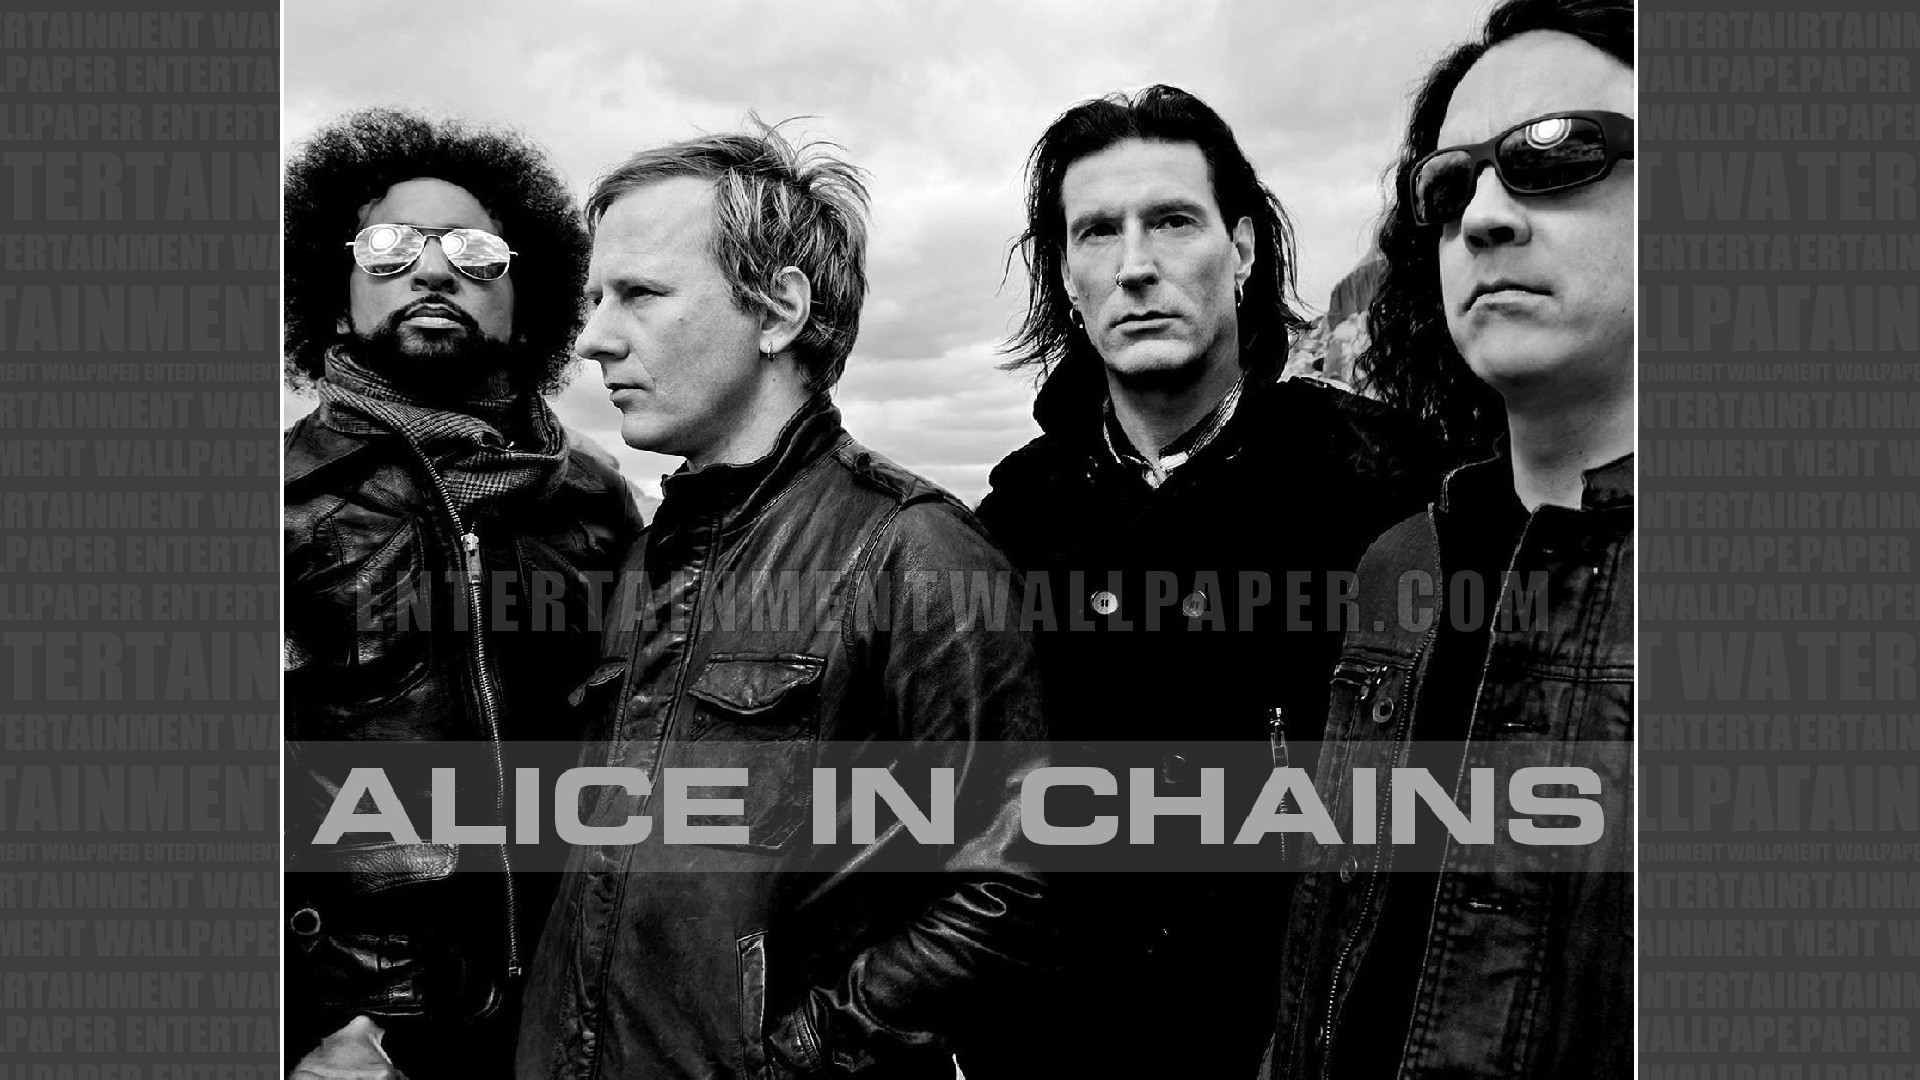 … alice in chains wallpaper 40039577 desktop …